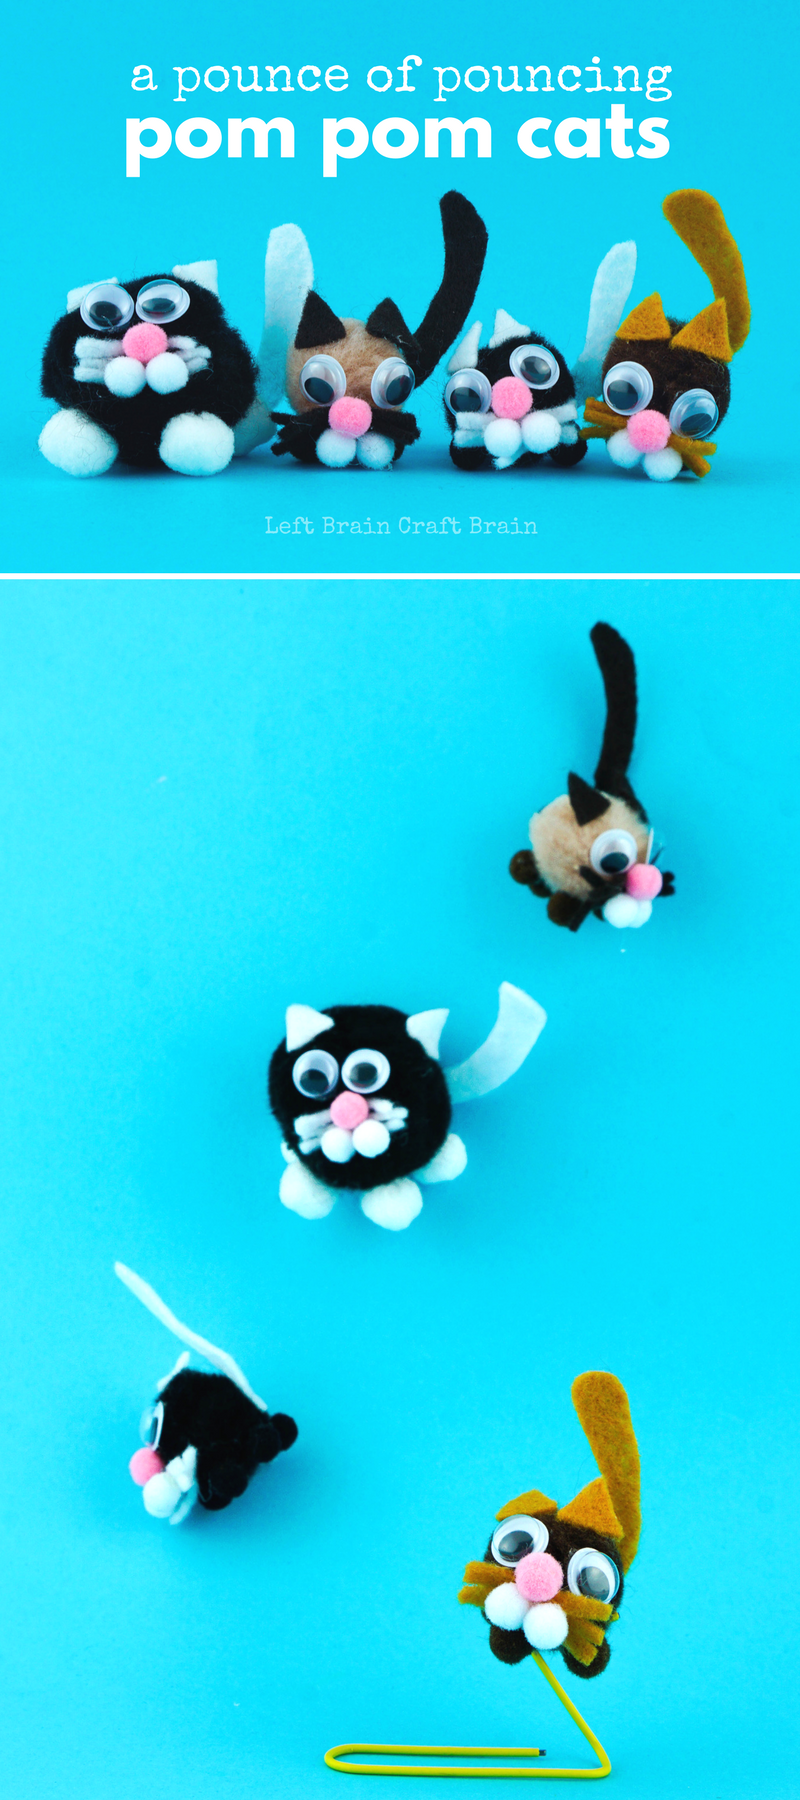 This adorable pouncing pom pom cats craft is actually an engineering project in disguise.